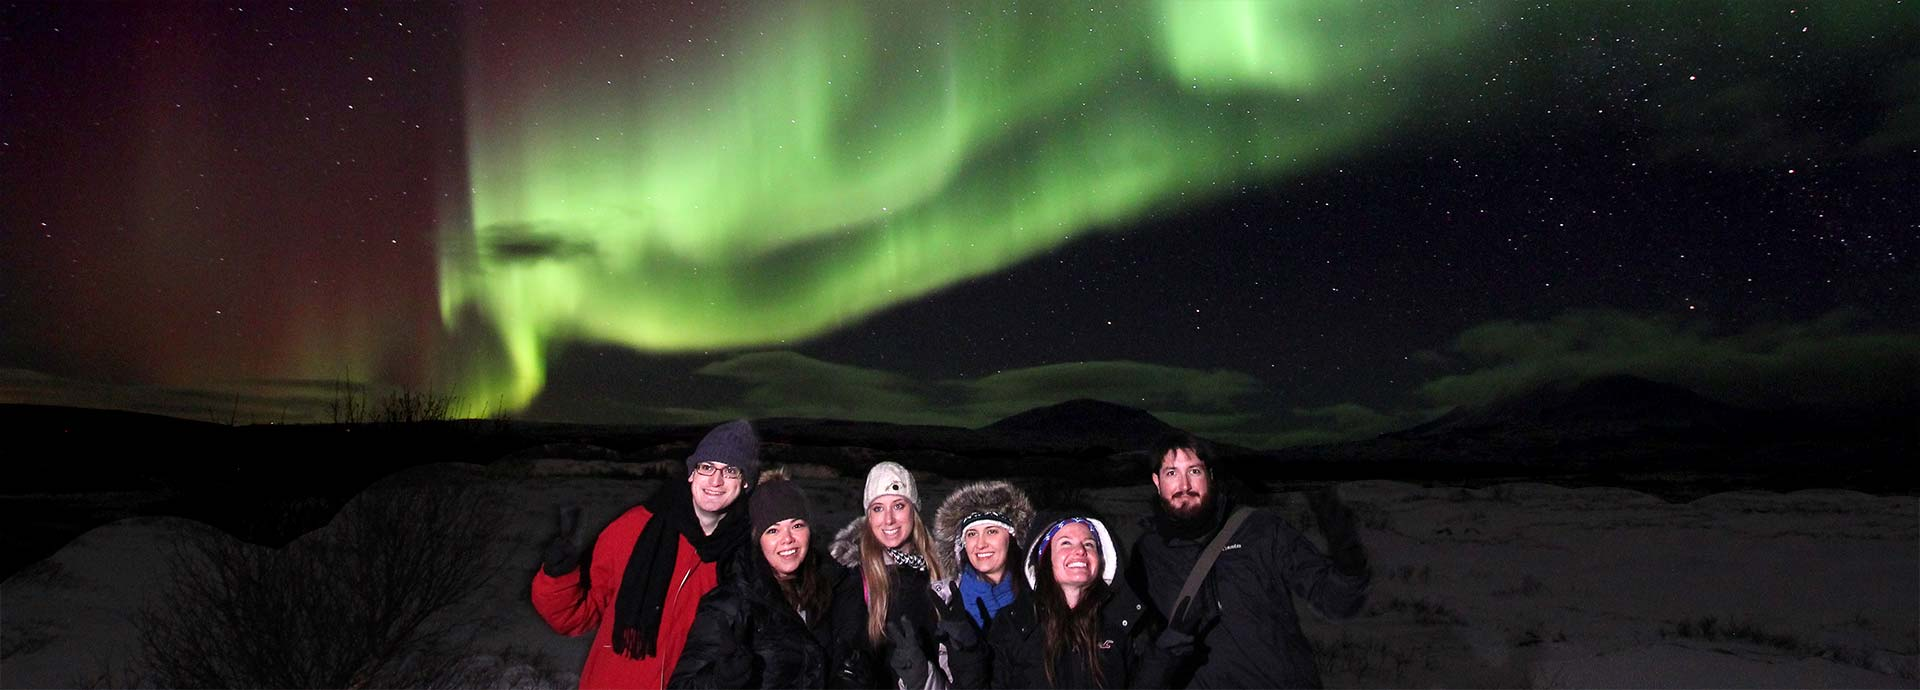 Northern Lights Experience Small Group Tour Happyworld Iceland